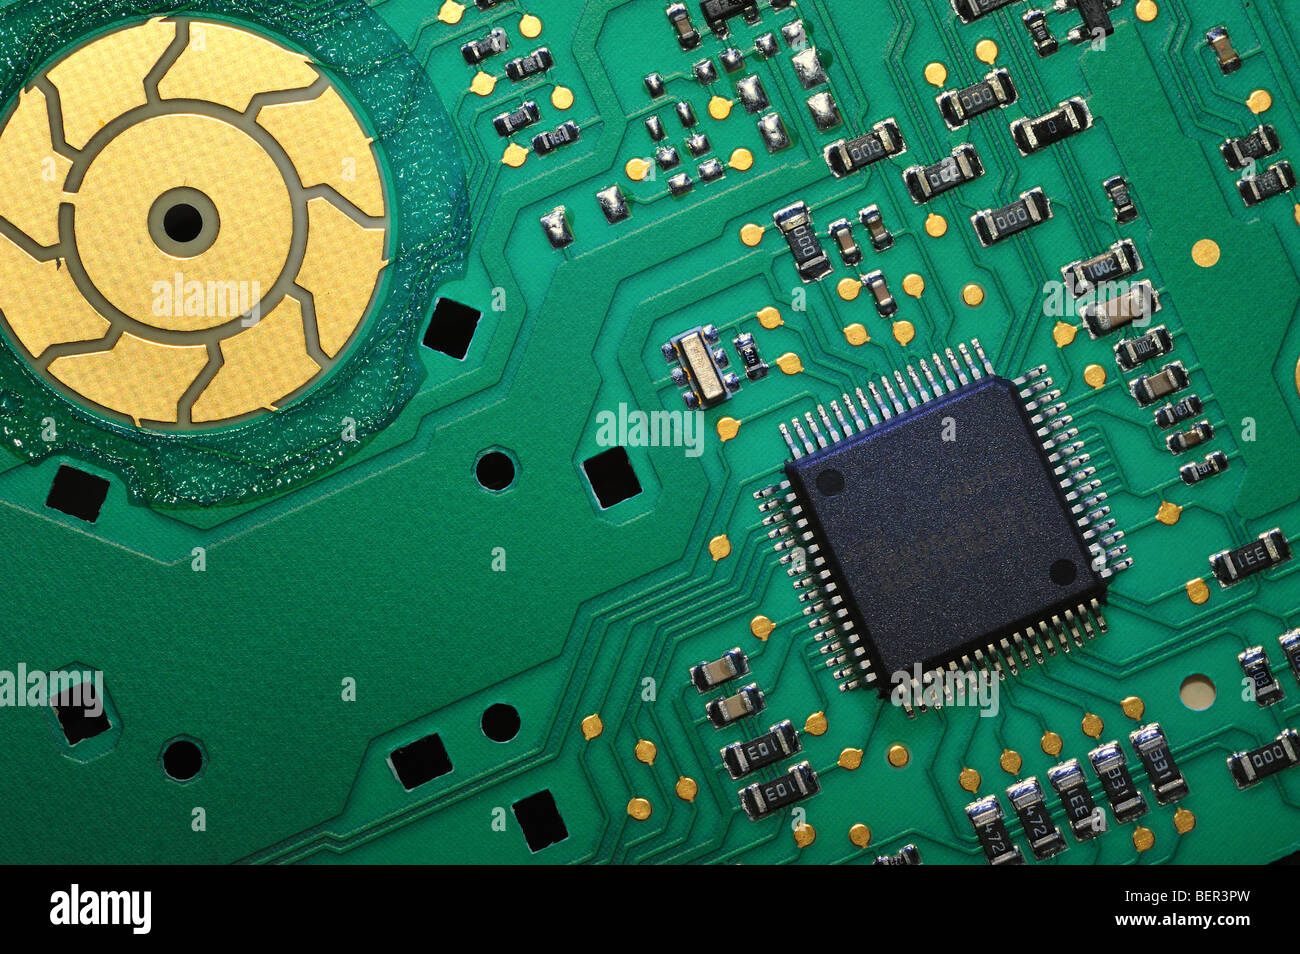 Circuit board from a Washing machine - Stock Image